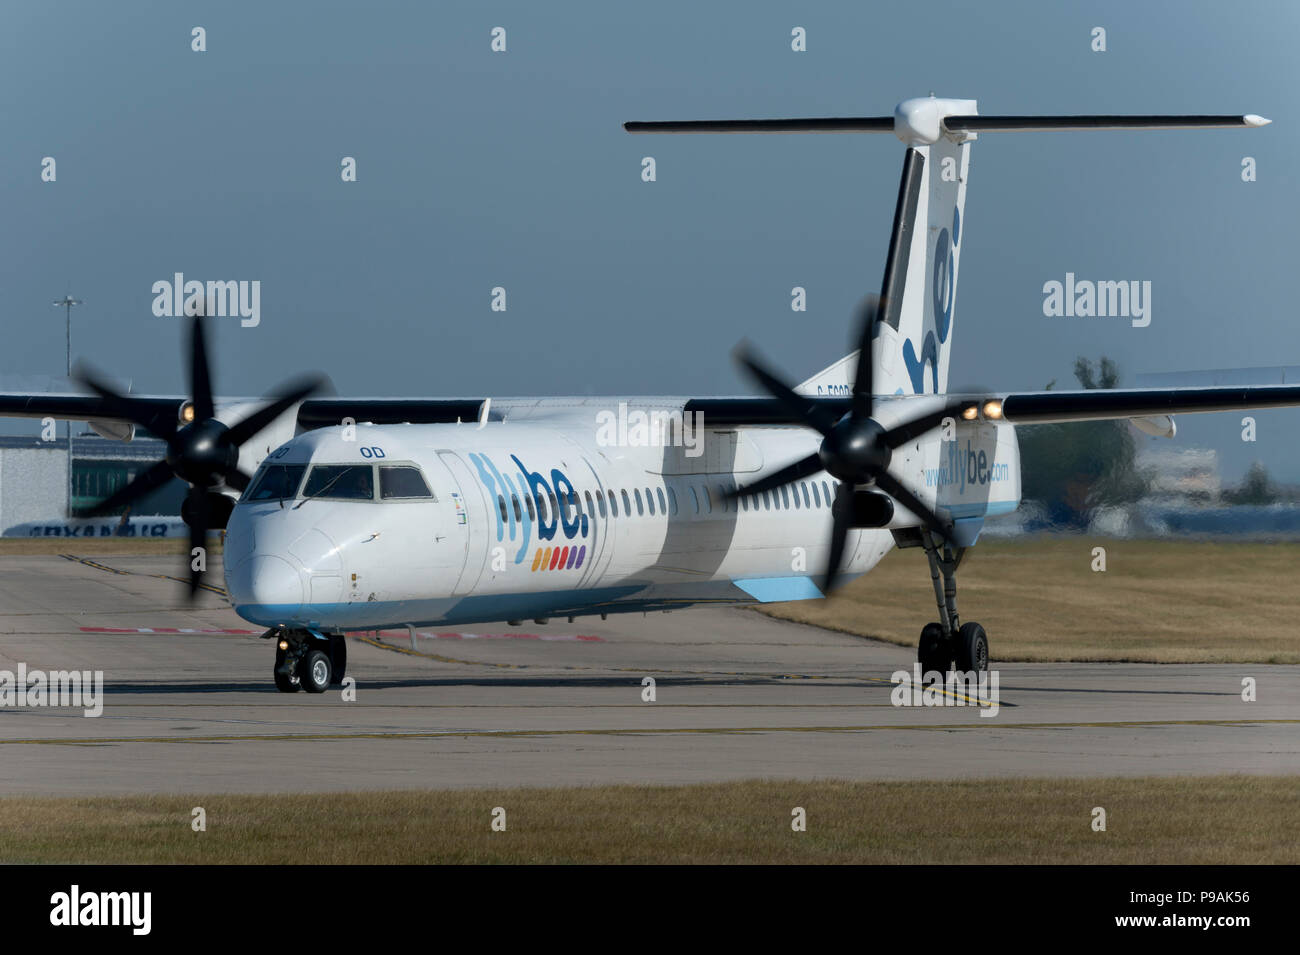 A Flybe Bombardier Dash 8 Q400 taxis along the runway at Manchester Airport whilst preparing to take off. - Stock Image